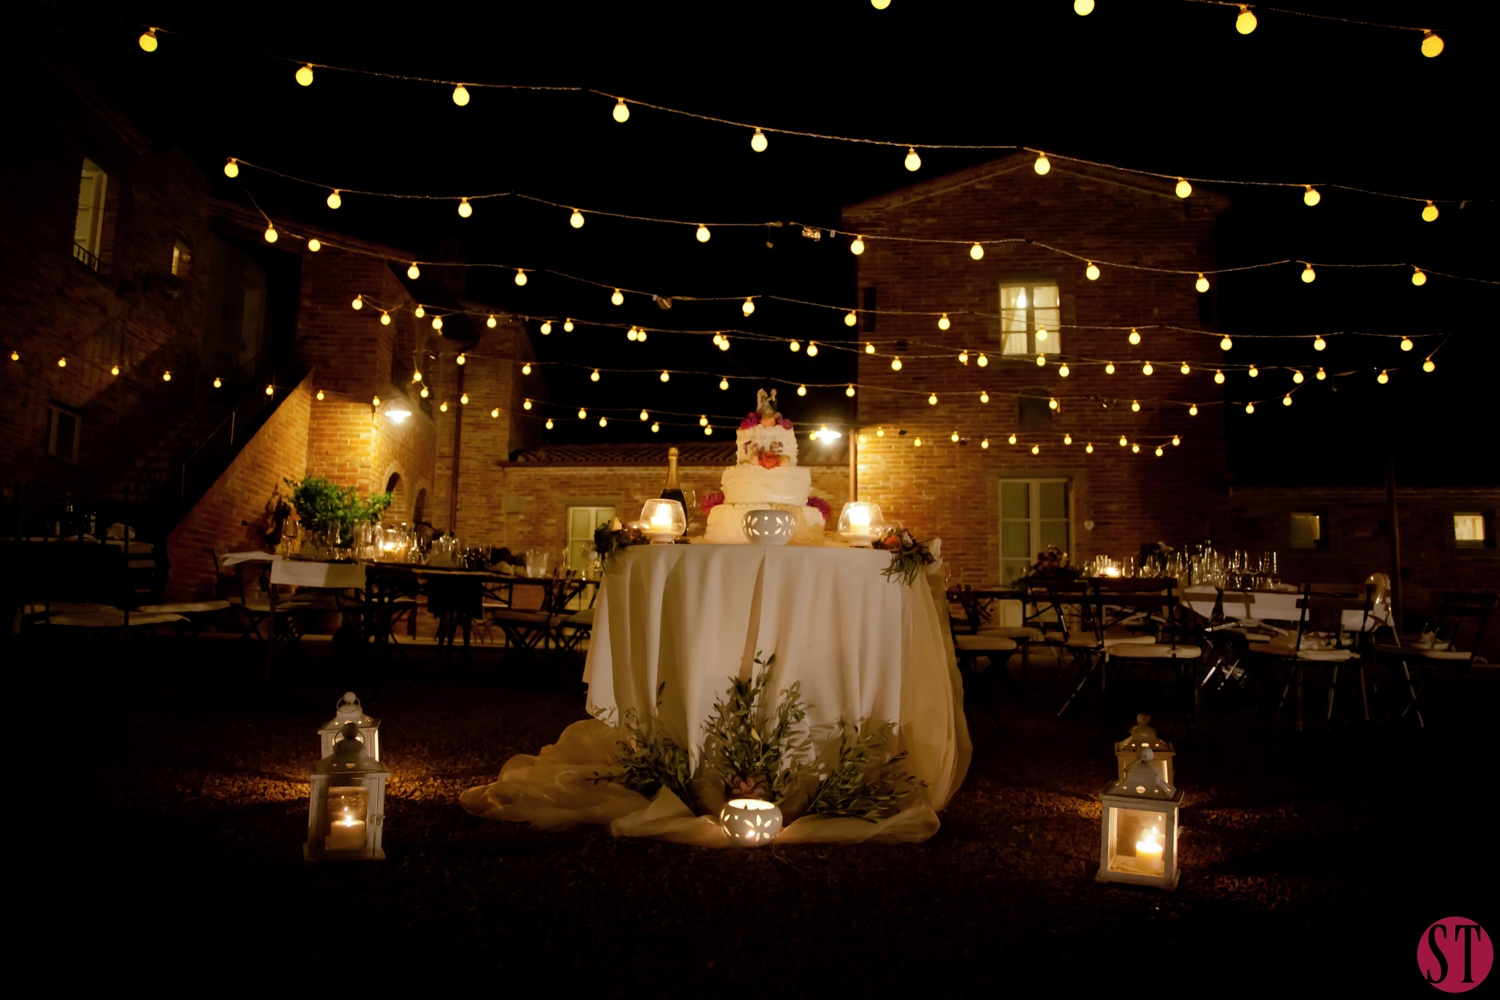 42-super-tuscan-wedding-planners-cortona